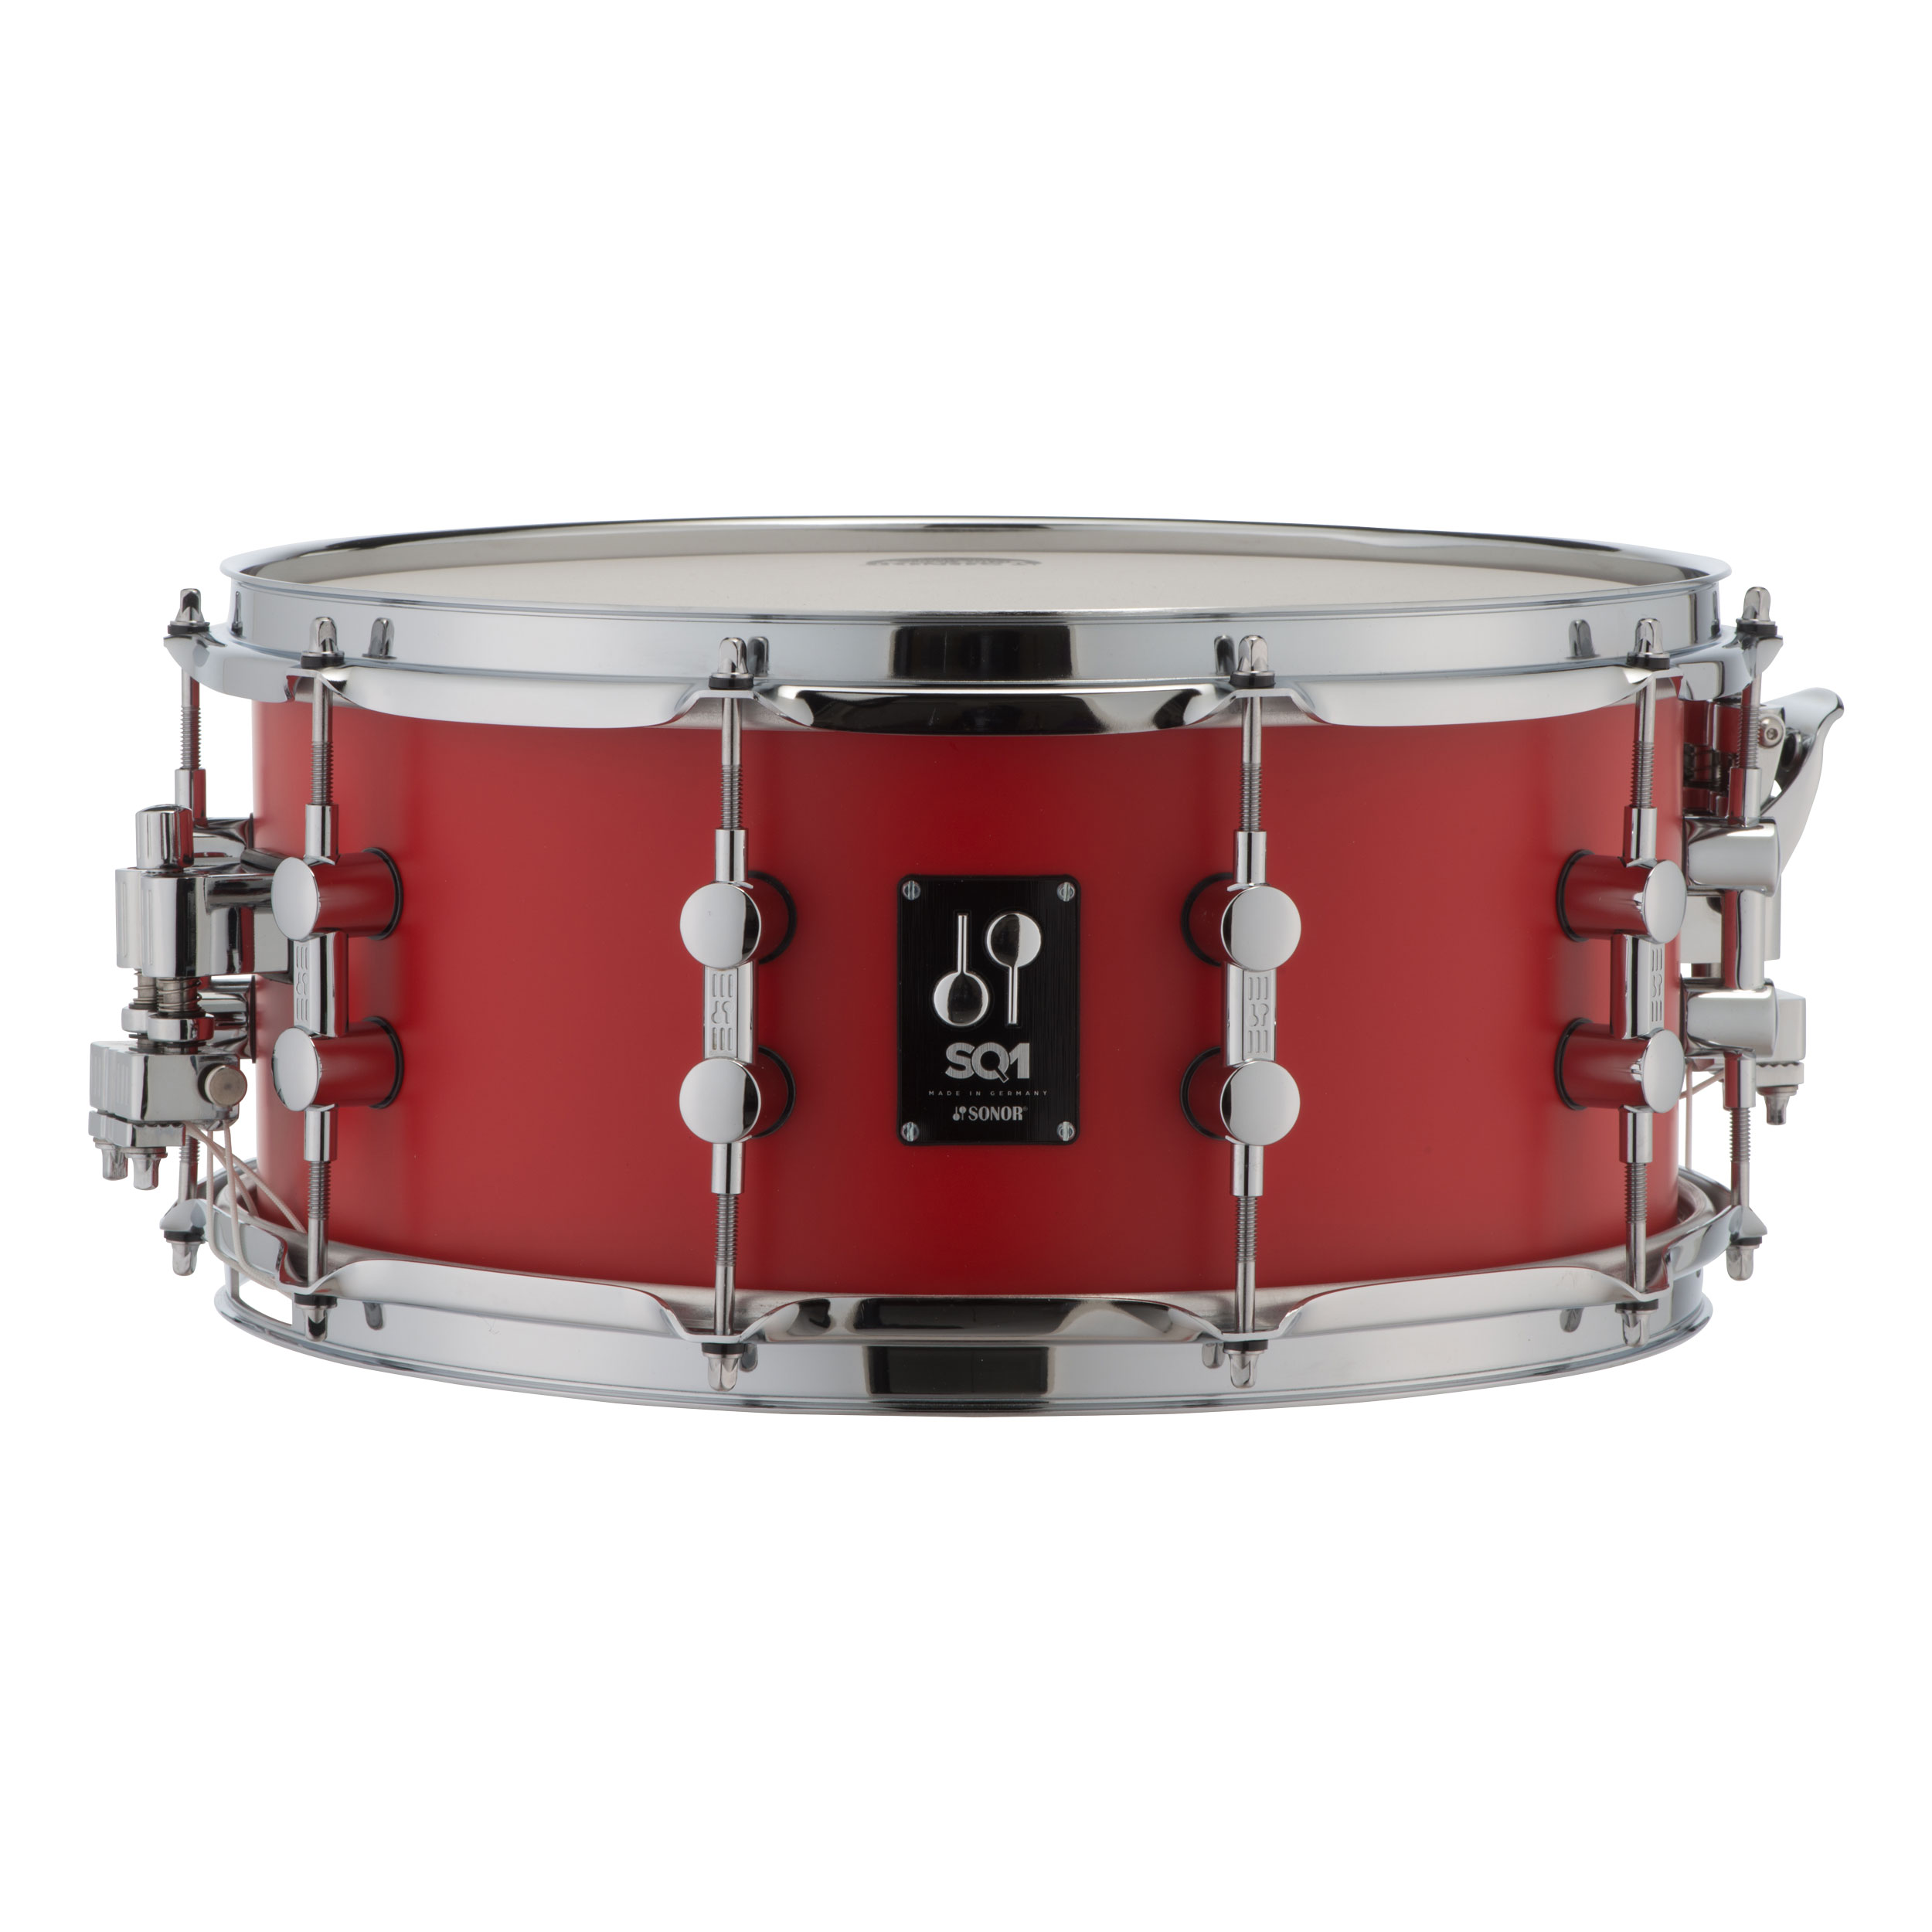 "Sonor 14"" x 6.5"" SQ1 Snare Drum"